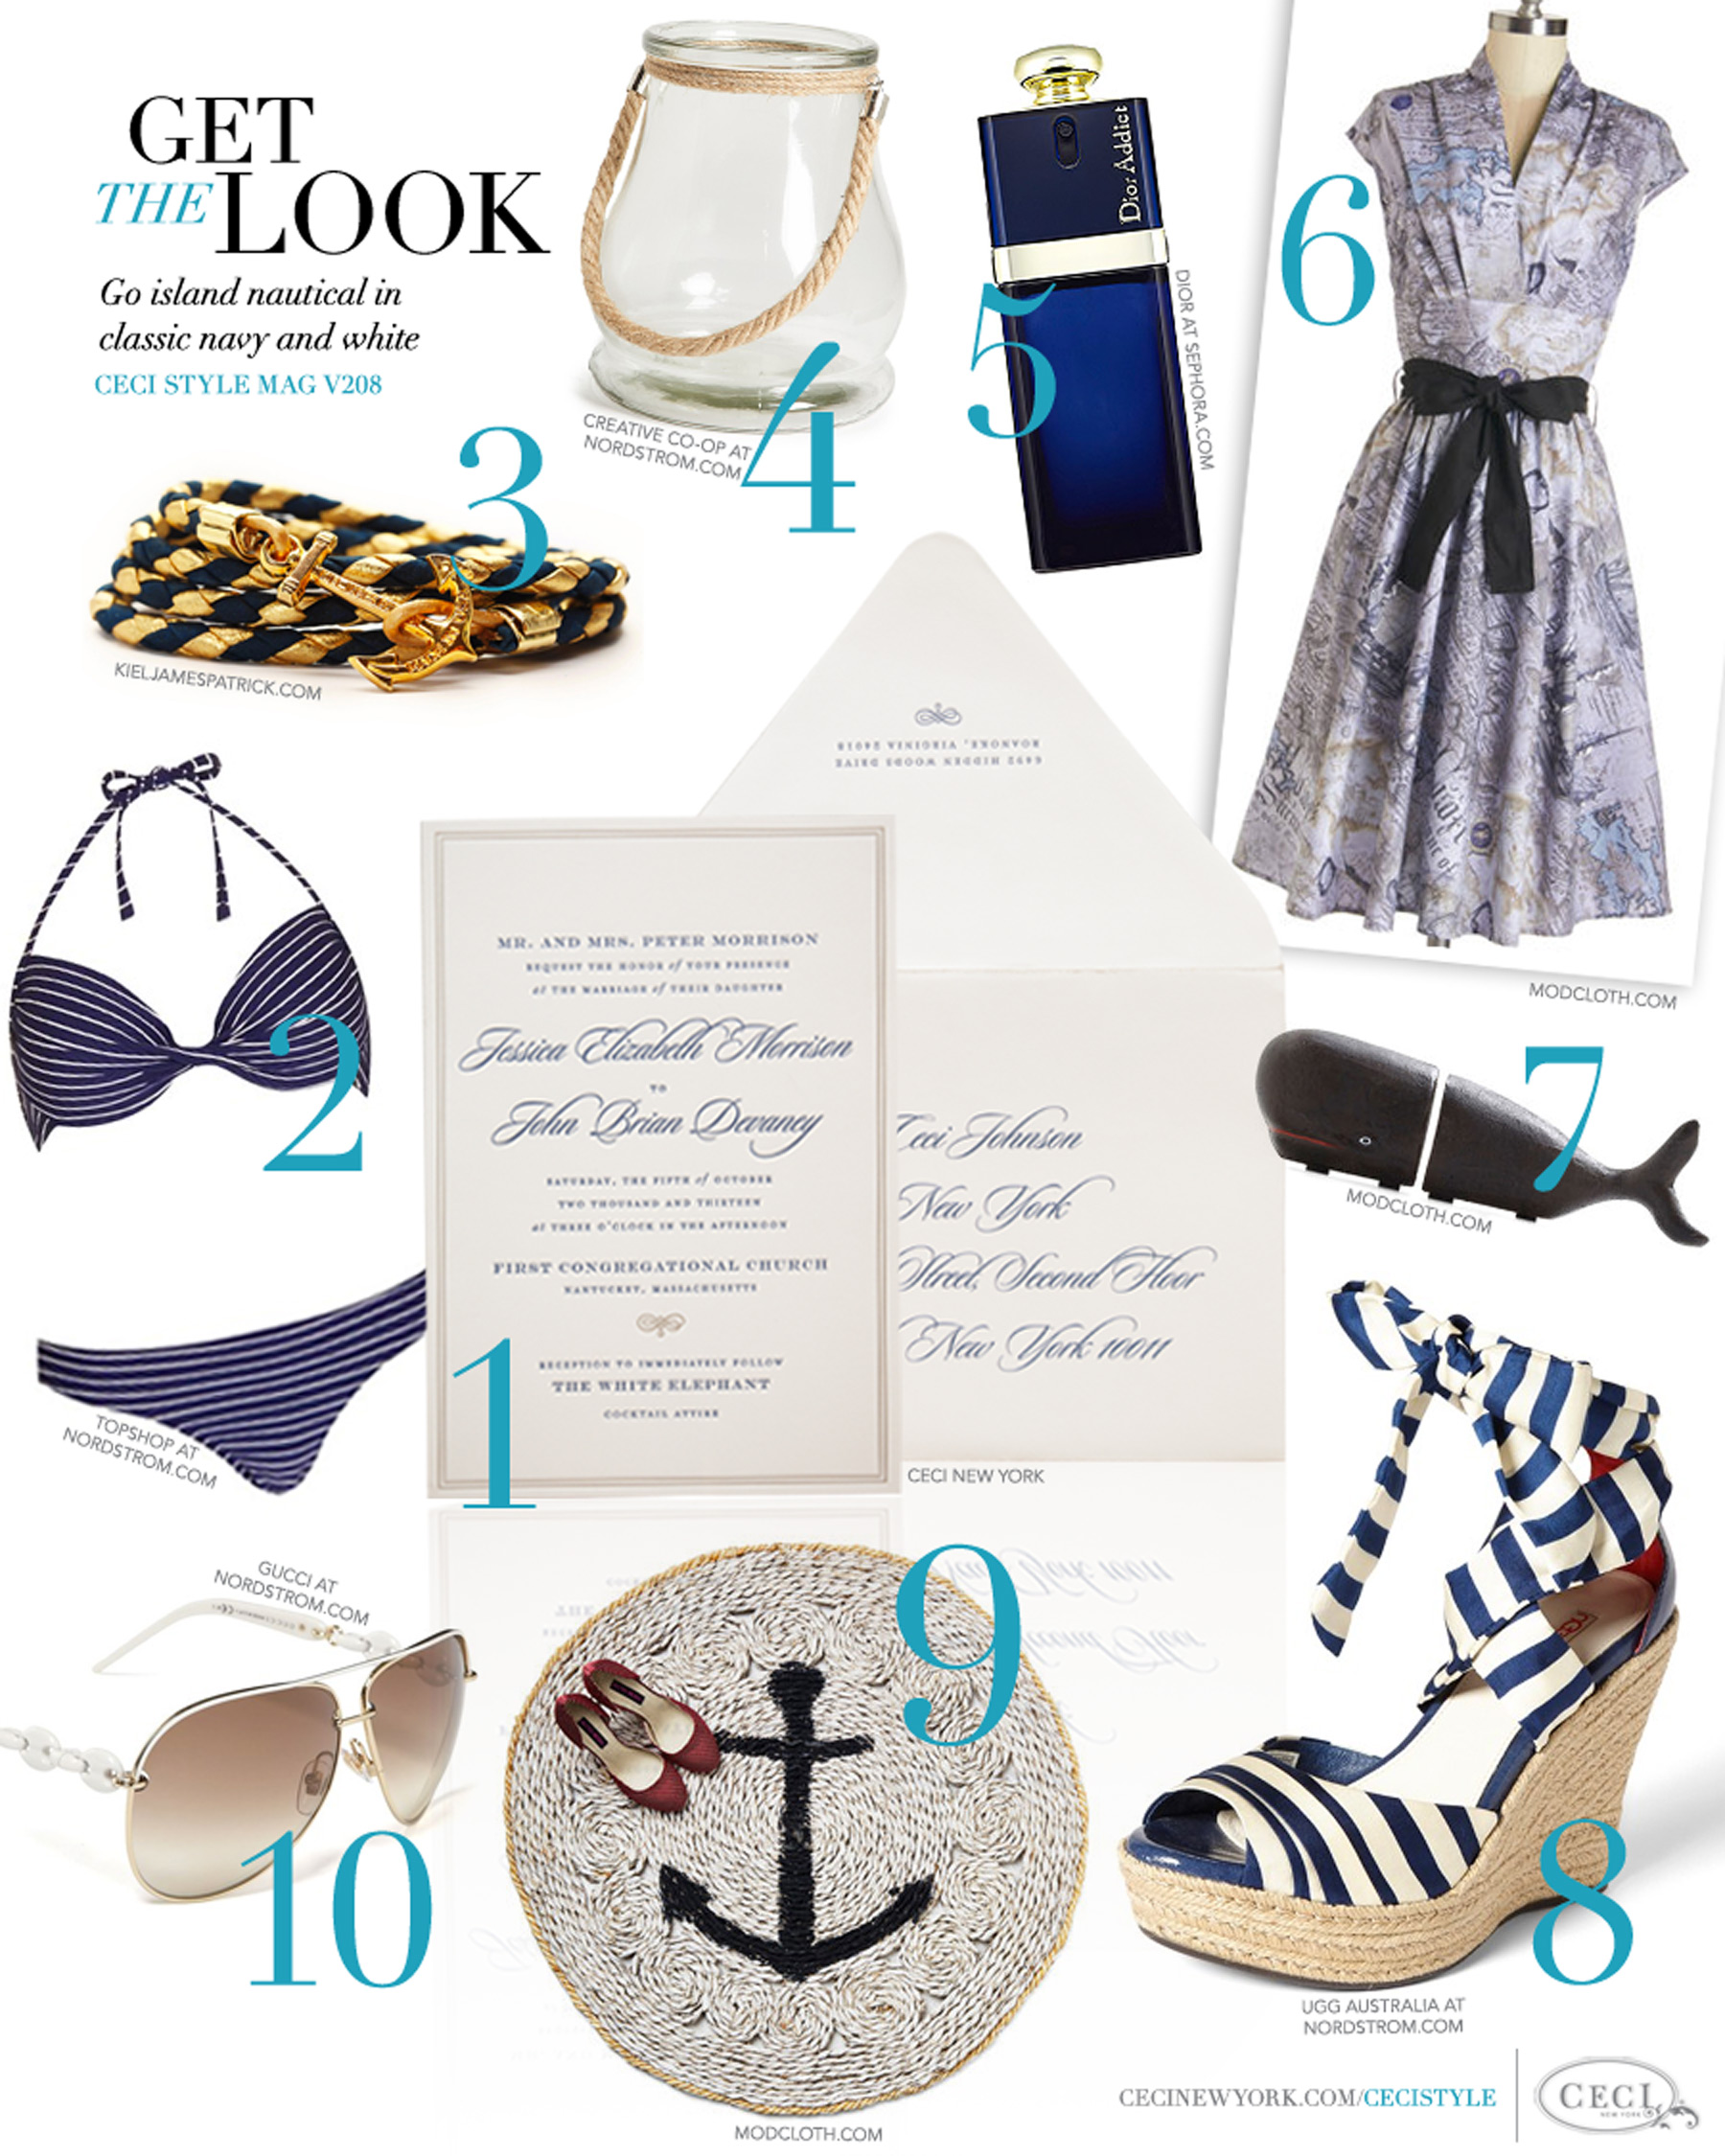 CeciStyle Magazine v208: Get The Look - Nantucket Nautical - Go island nautical in classic navy and white - Luxury Wedding Invitations by Ceci New York - gucci, modcloth, rug, ugg, whale, nautical, gifts, dior, creative co-op, kiel james patrick, topshop, ceci new york, invitation, wedding, home goods, beauty, jewelry, fashion, shoes, food, handbags, bookend